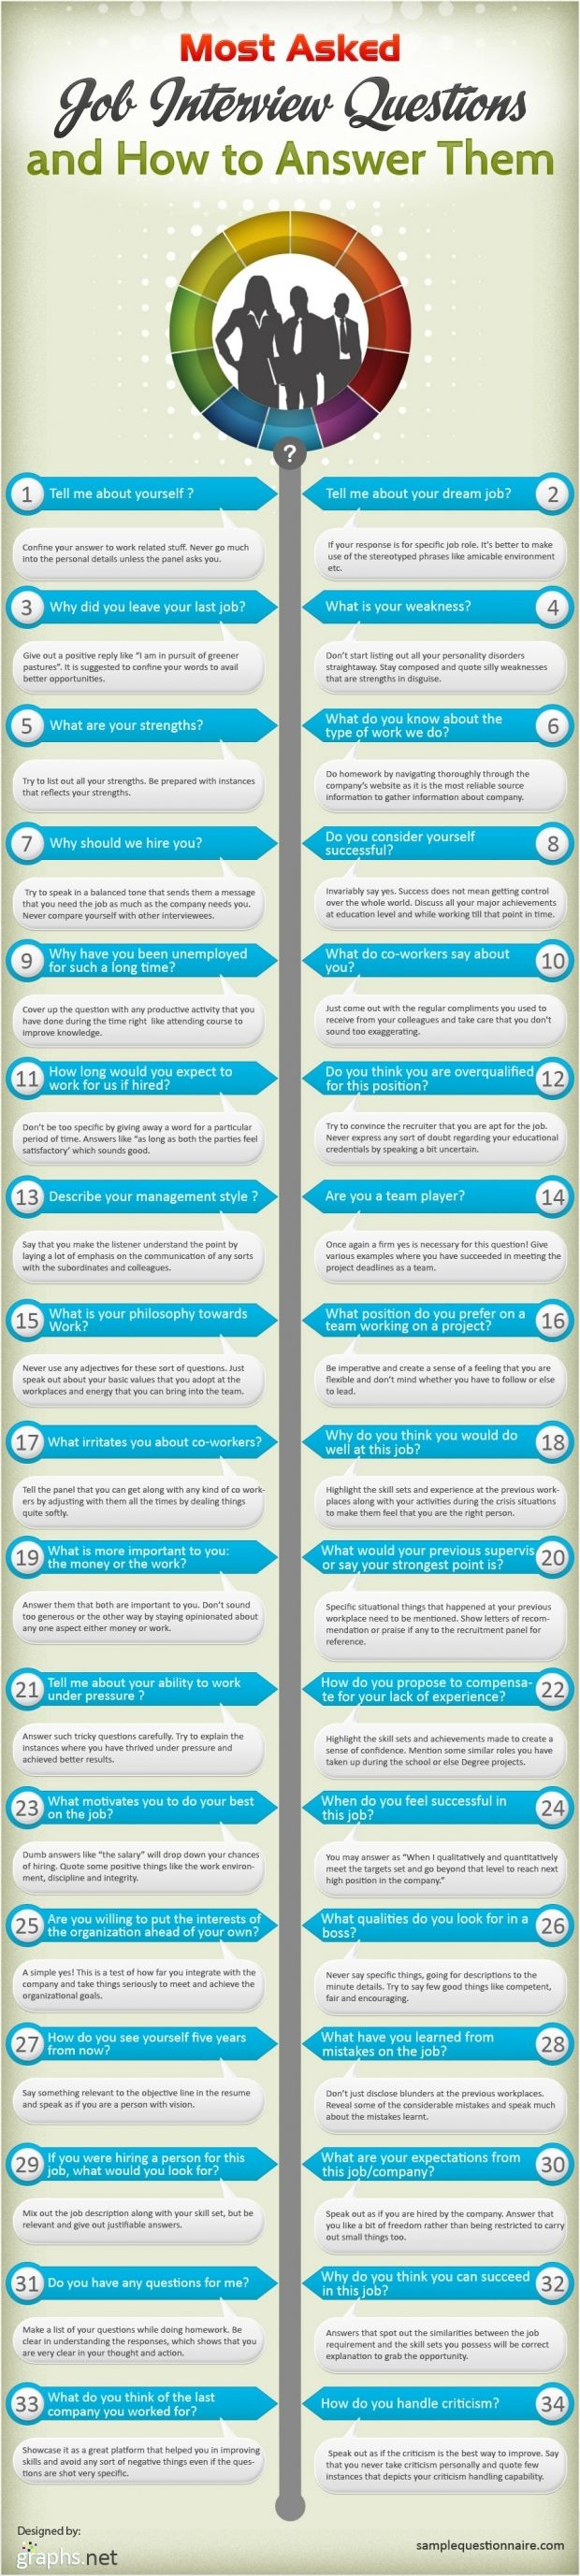 34 Most Asked Interview Questions